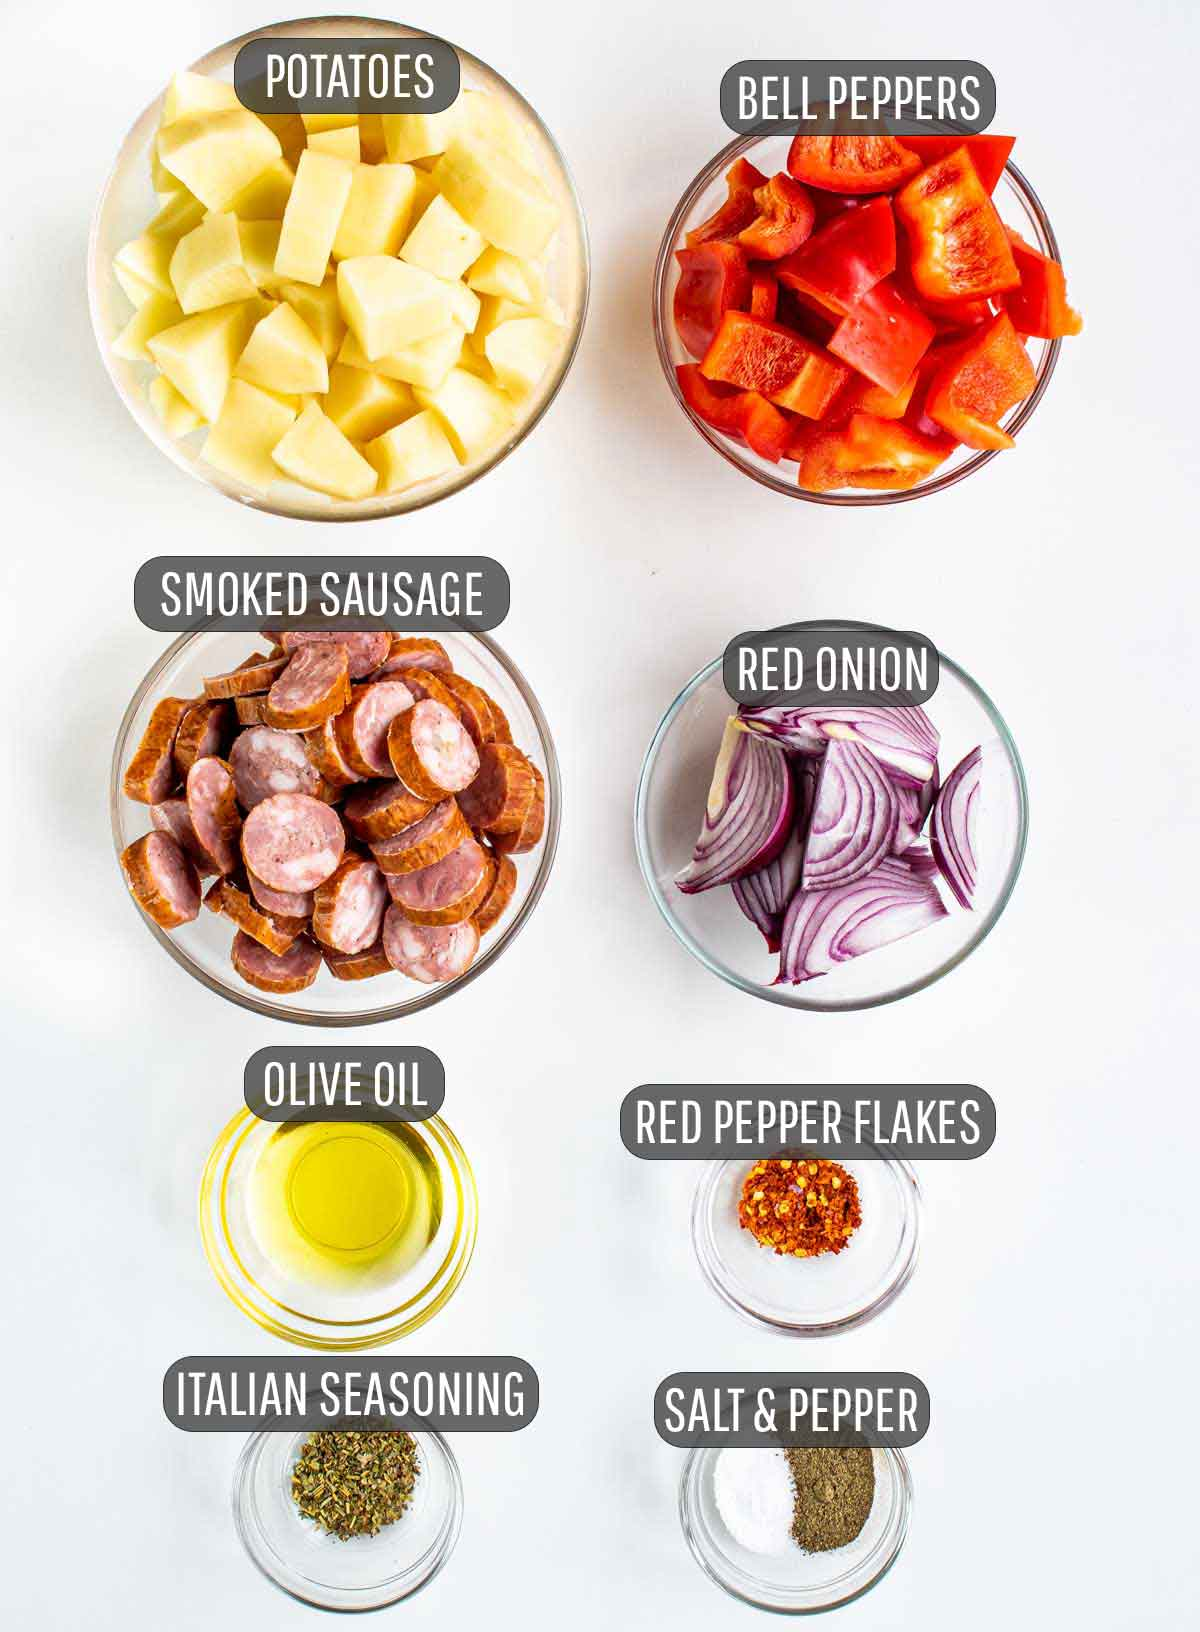 overhead shot of ingredients needed to make roasted potatoes and sausage.